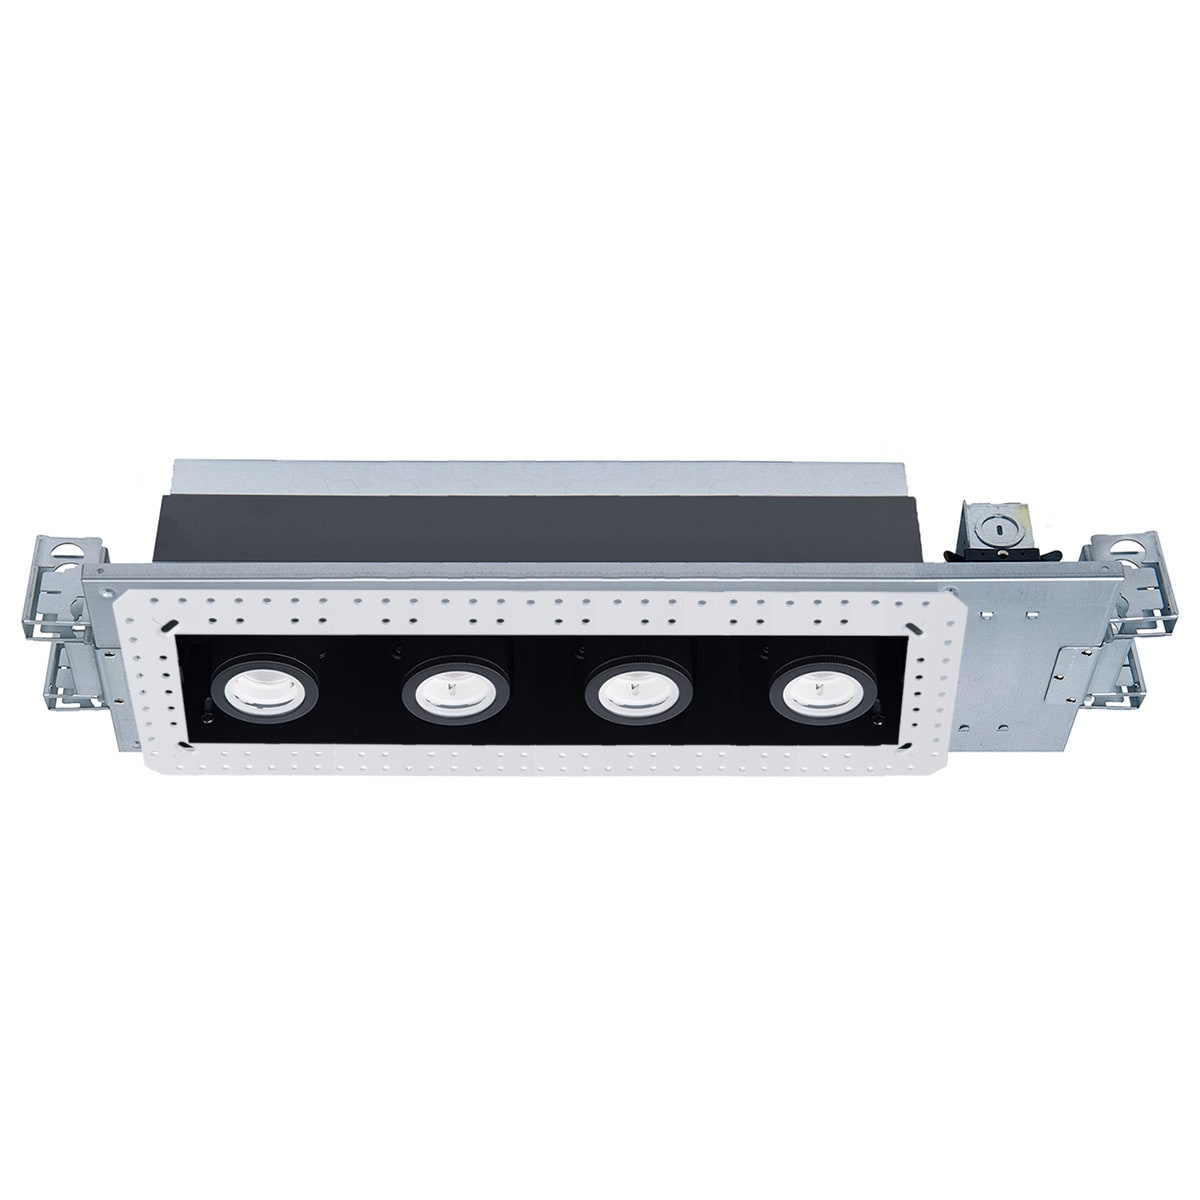 Wac Lighting Mt 4415l 935 Wtbk White Black 3500k Silo Multiples 4 Light 22 Wide Led Square Adjustable And Invisible Trim With New Construction And Non Ic Rated Housing 58 Watts Lightingdirect Com